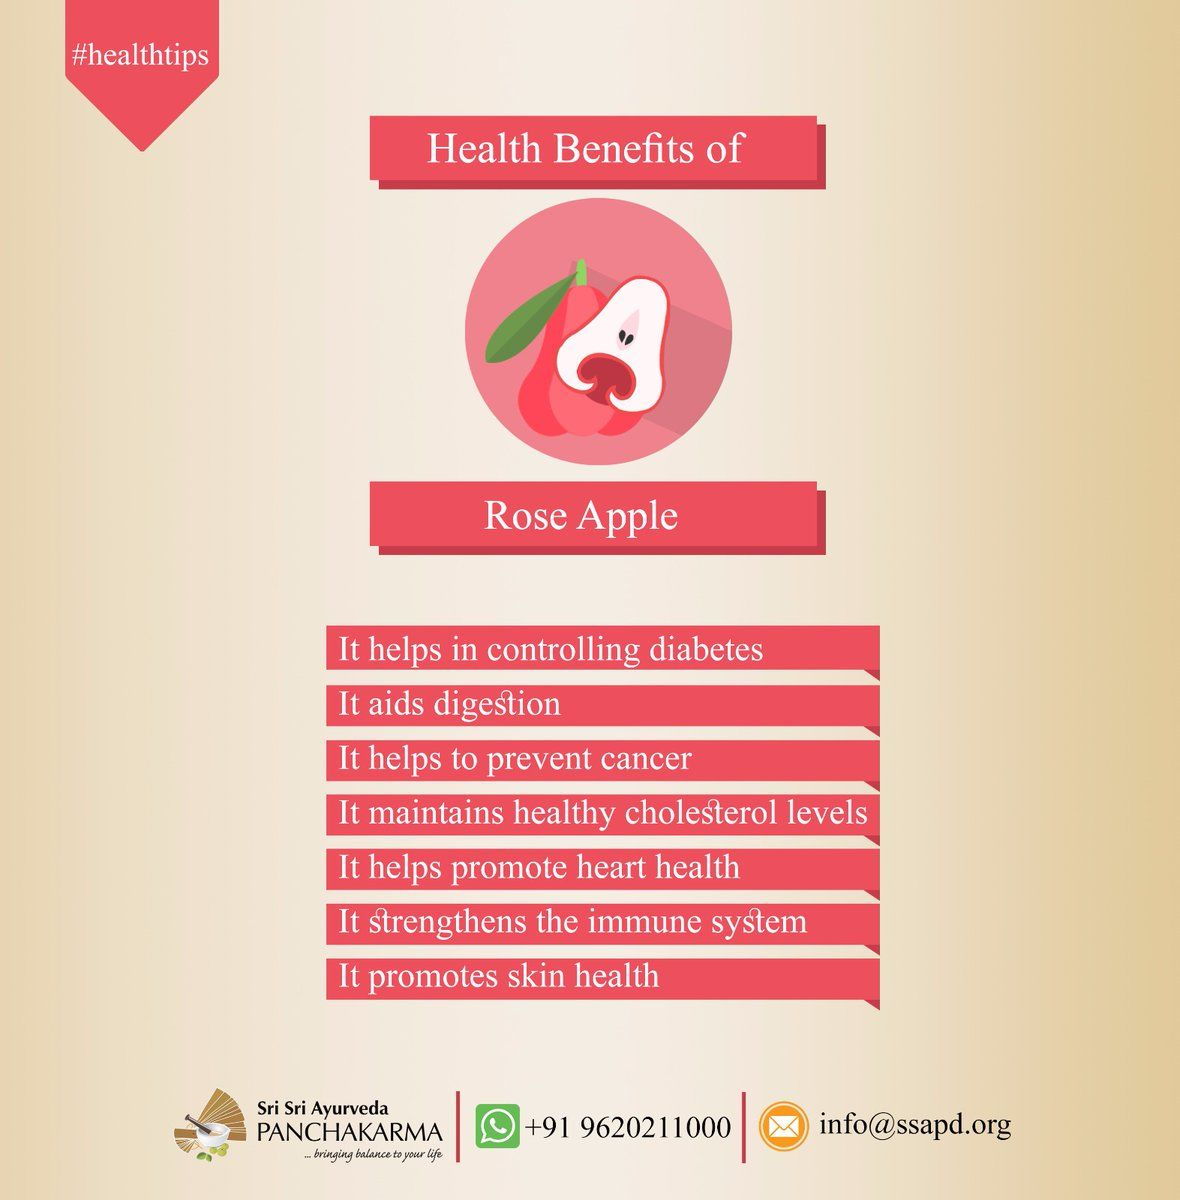 Rose Appple benefits ayurveda healthy artofliving